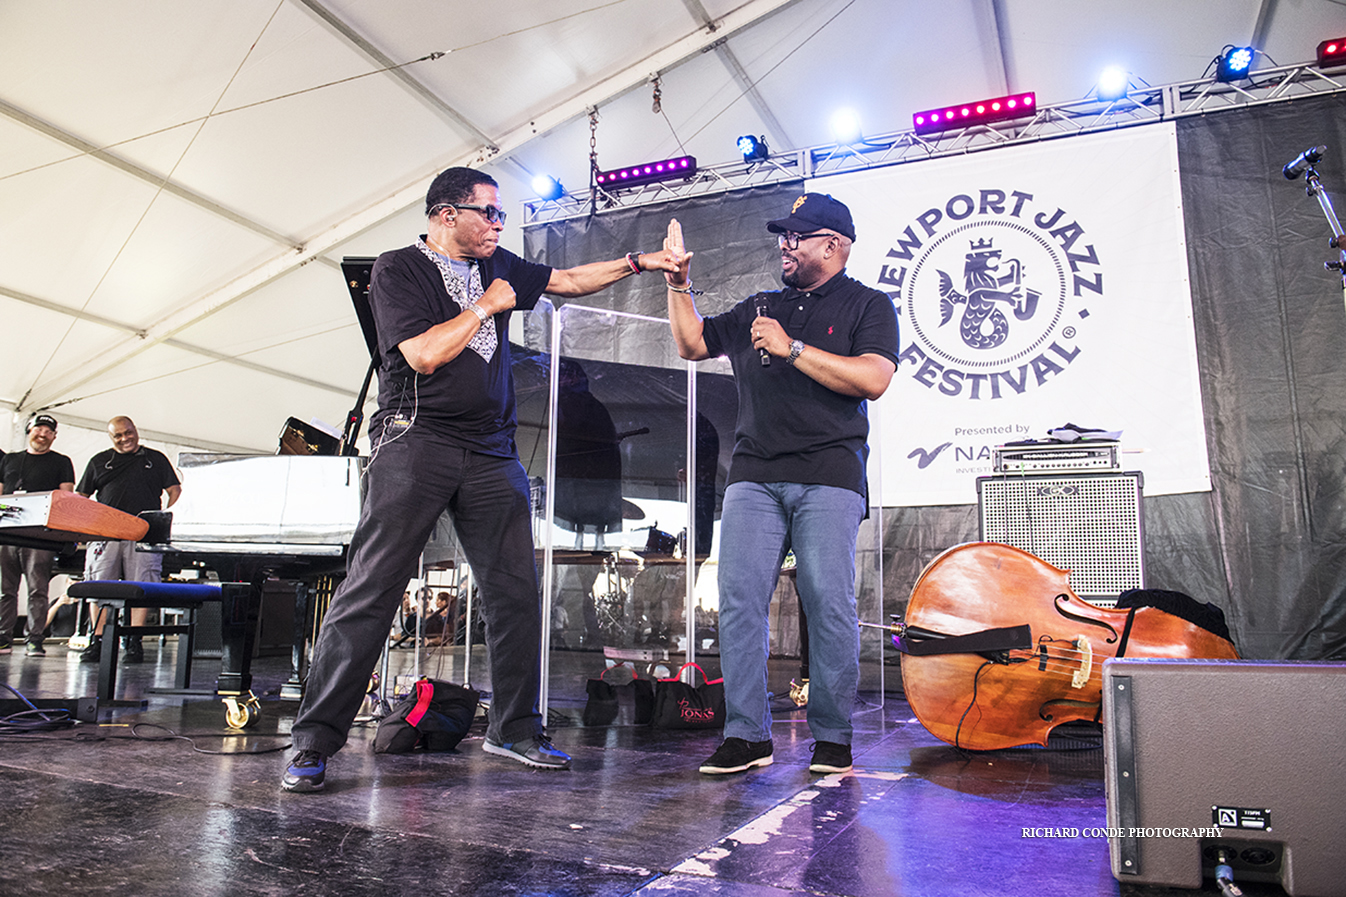 Herbie Hancock and Christian McBride at the 2019 Newport Jazz Festival